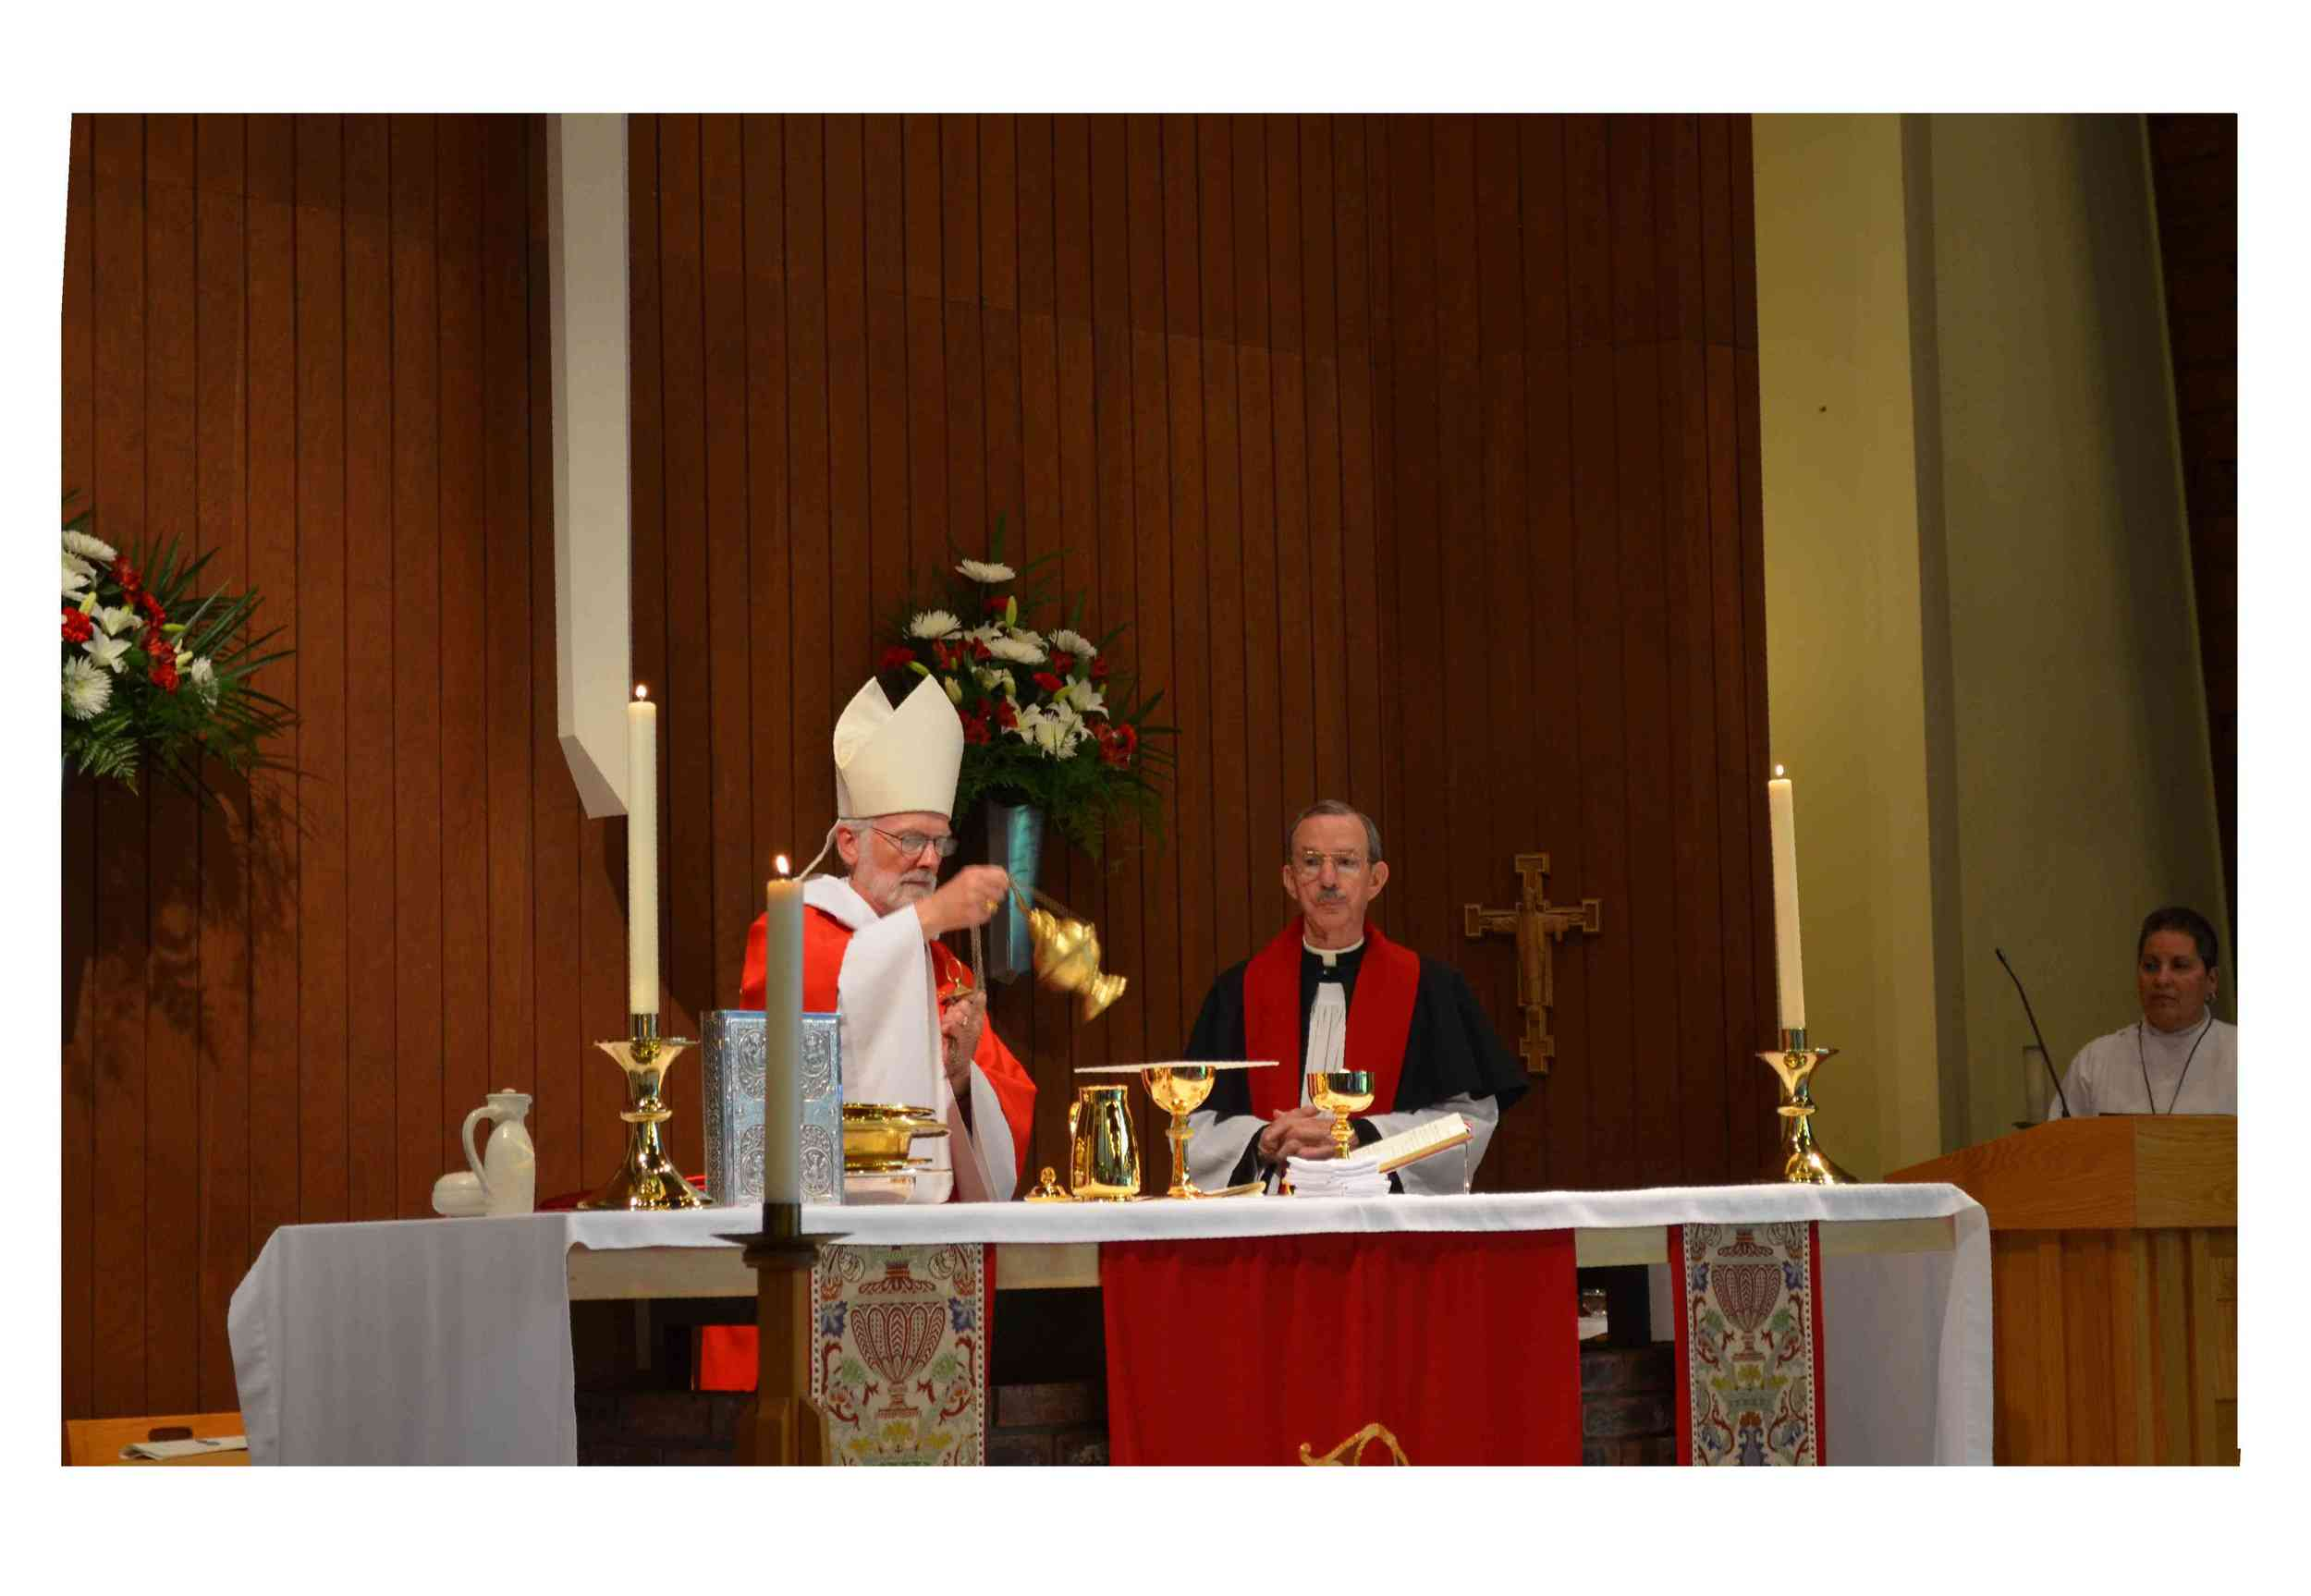 Dedication of candle holders and purificators for the main altar